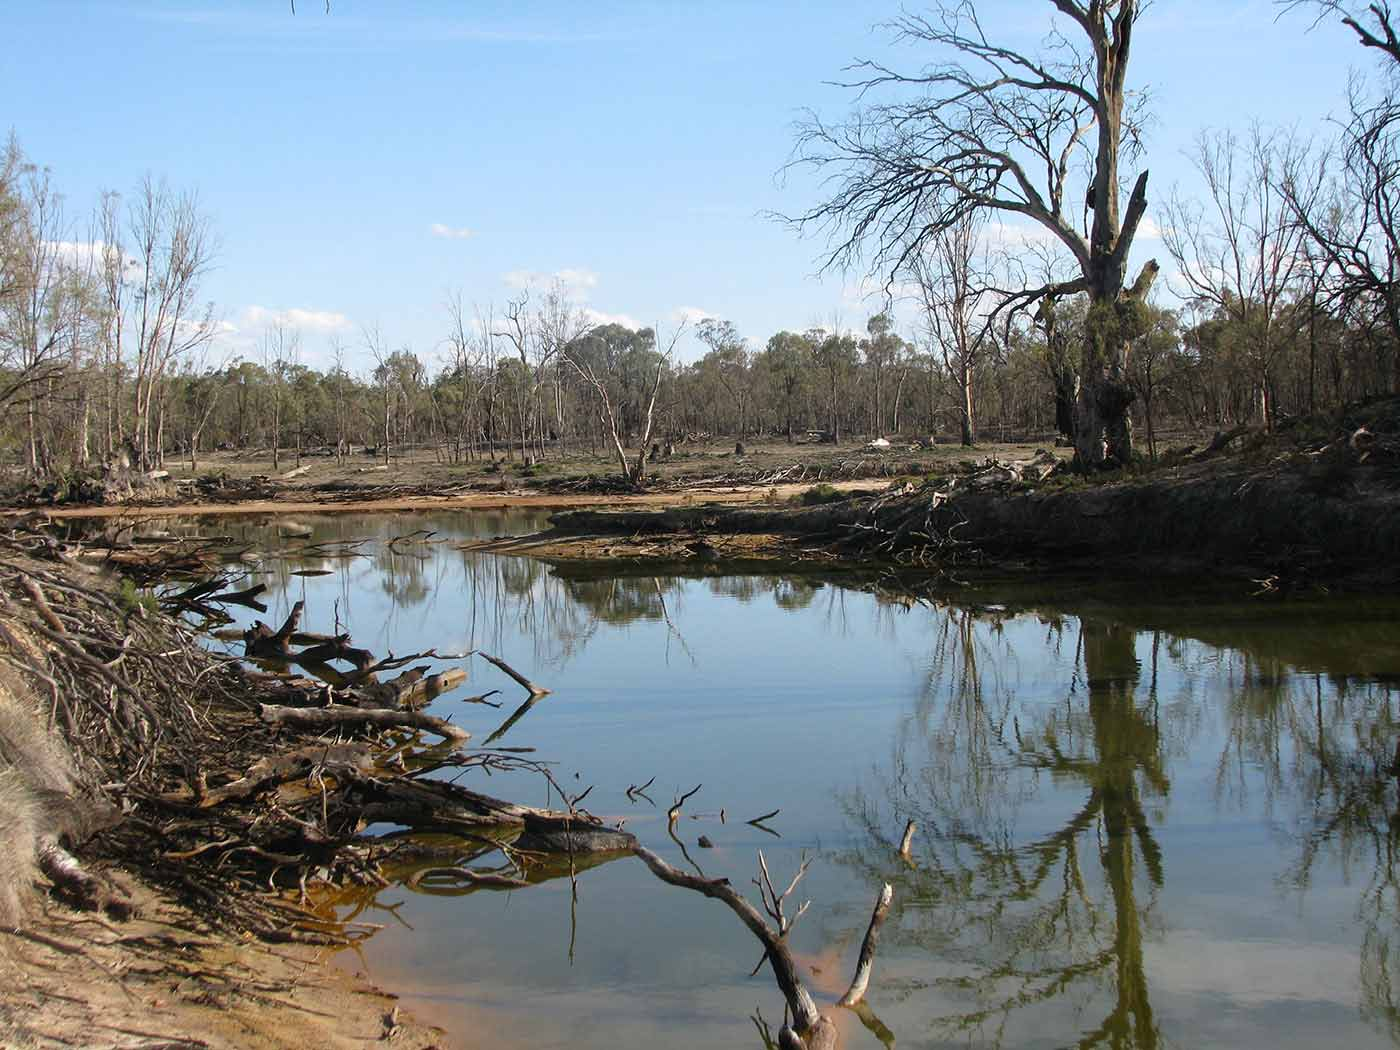 A colour photograph of a river with dead trees and branches on either side. - click to view larger image